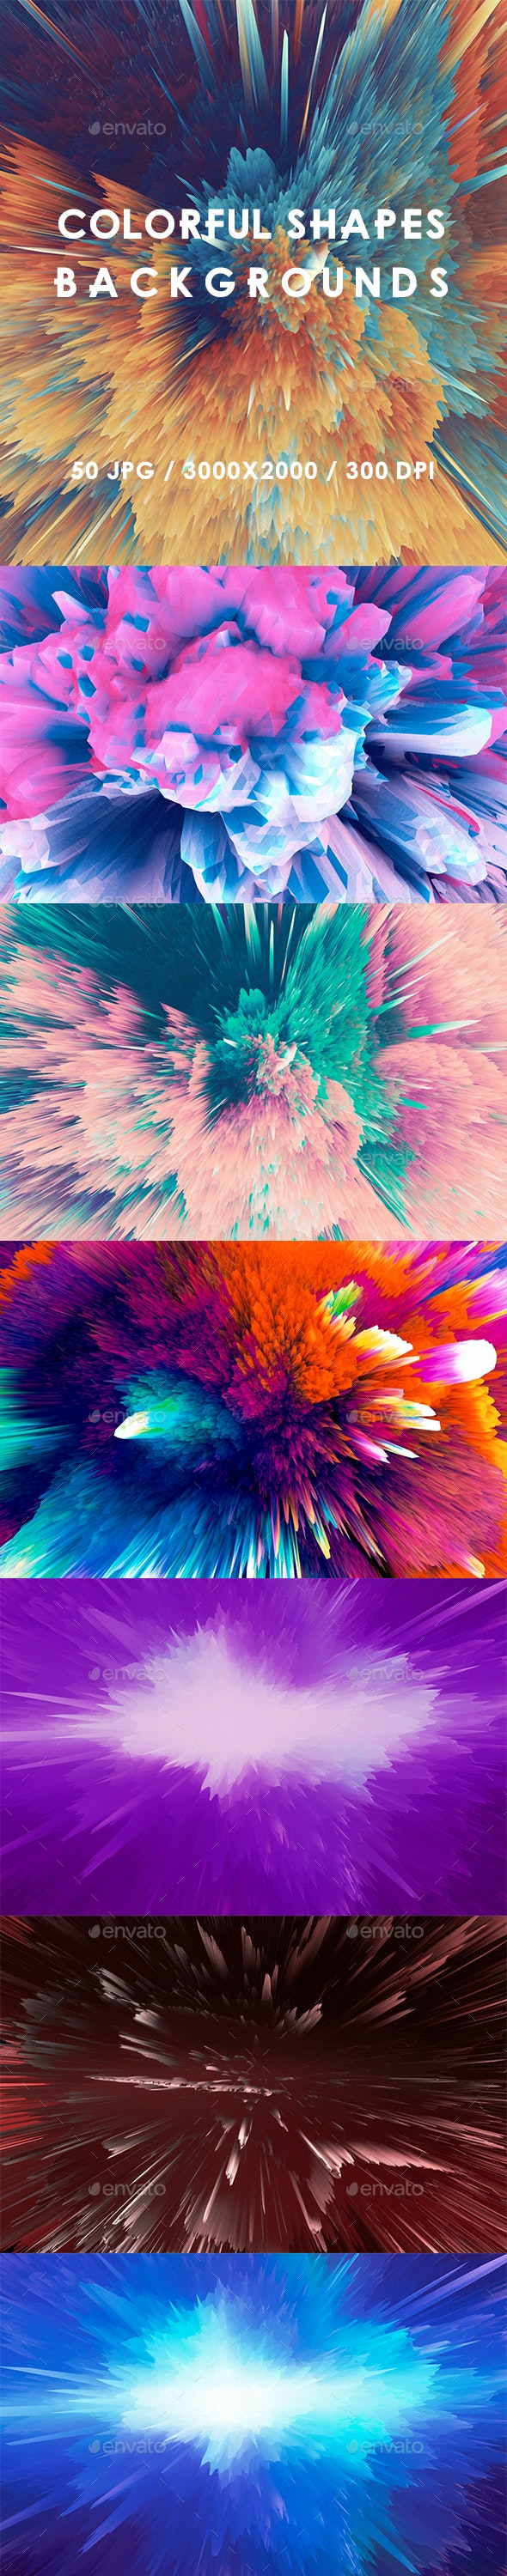 50 Colorful Shapes Backgrounds - Abstract Backgrounds